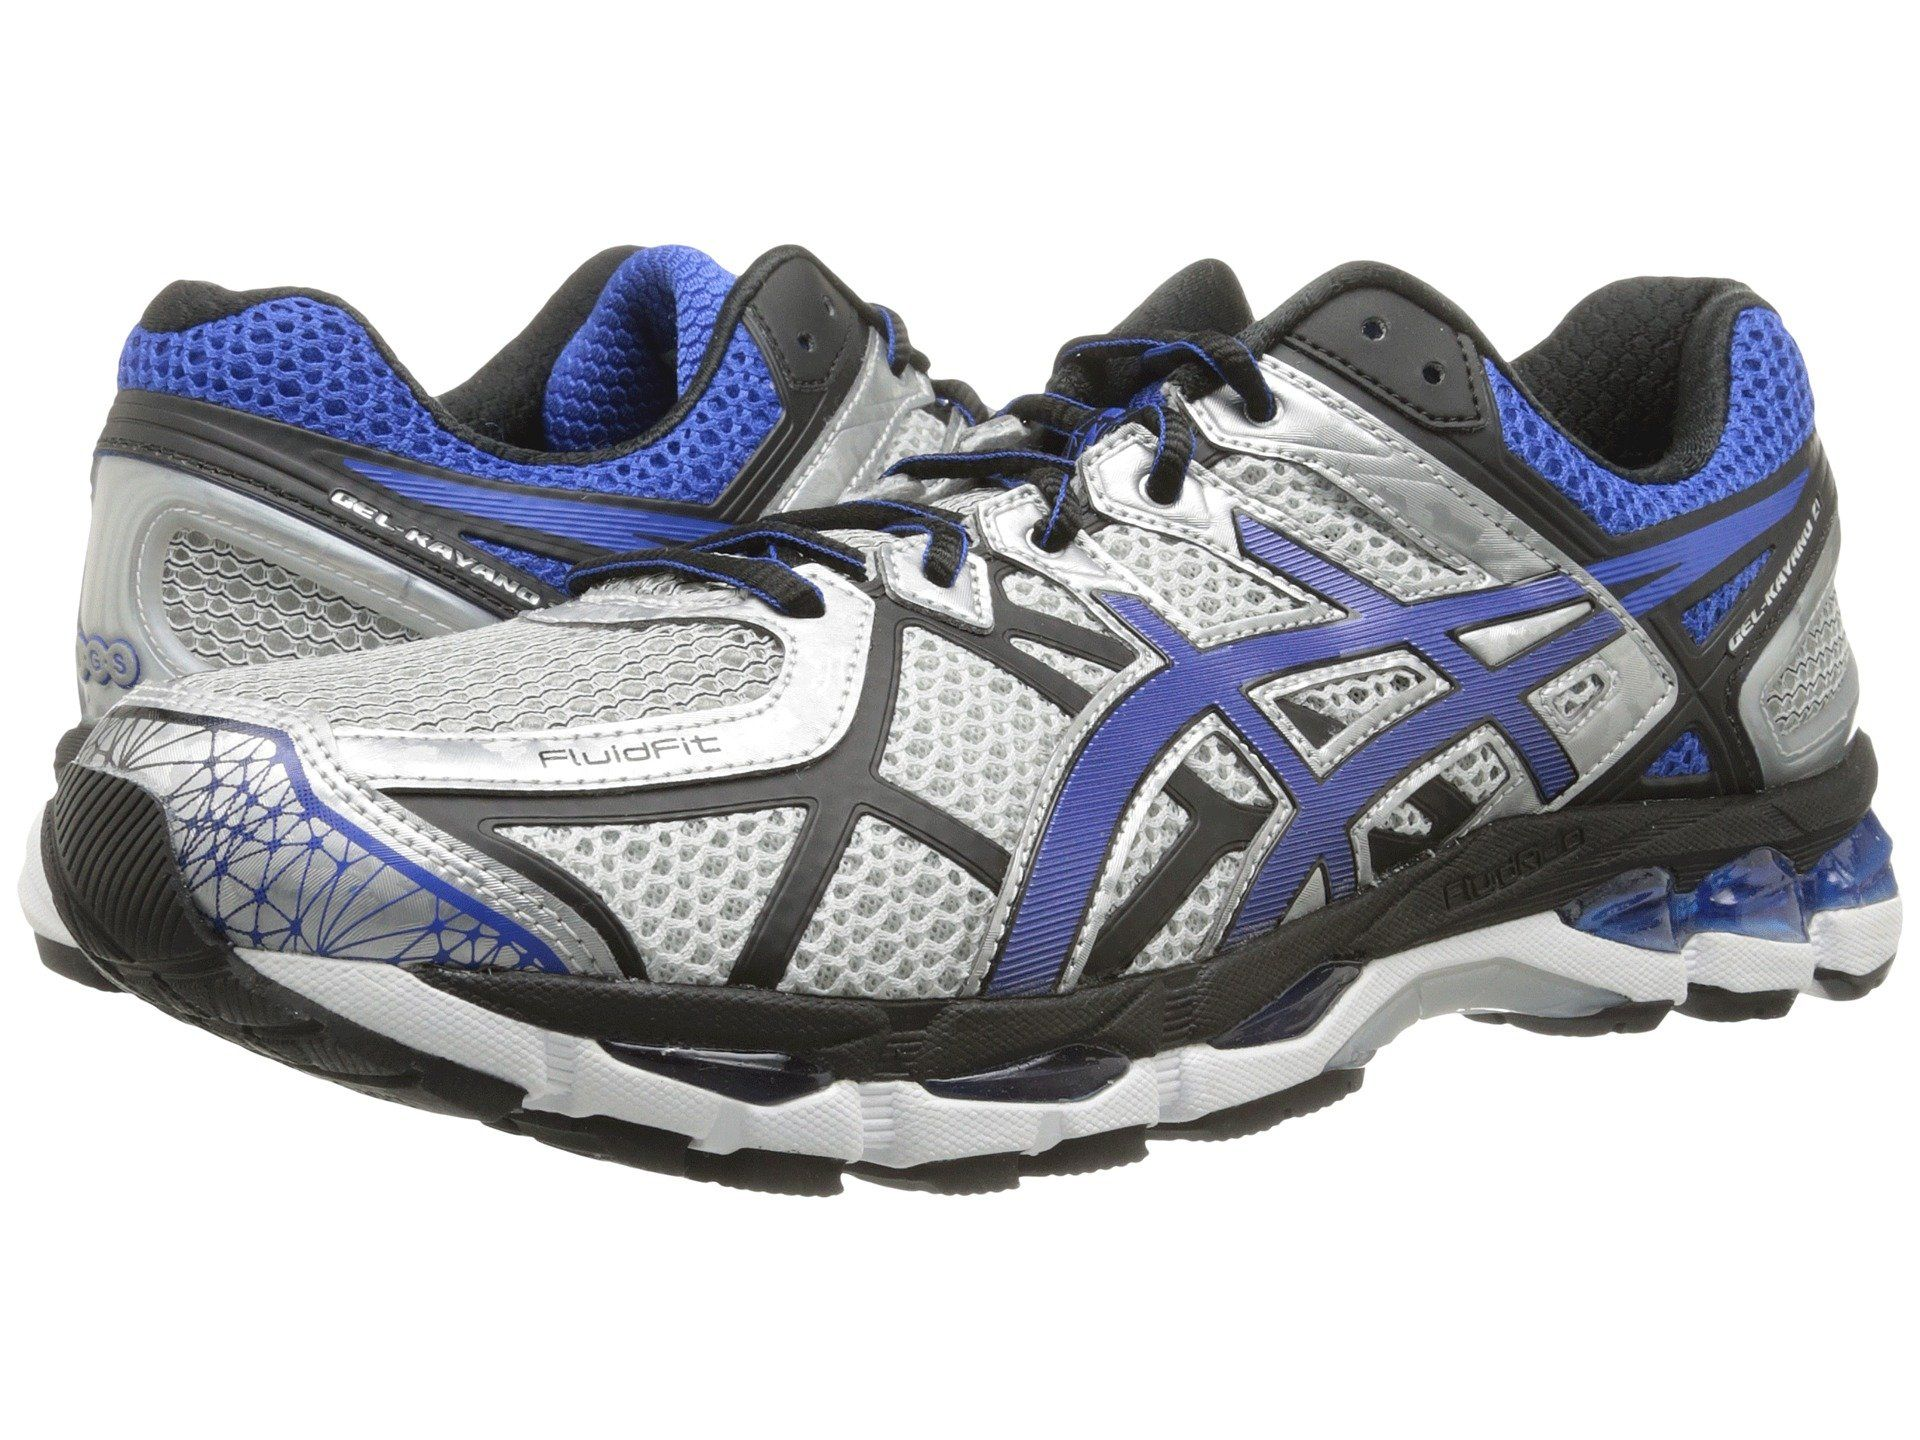 fb24fe5357a ASICS Women's Gel kayano 21 Running Shoe |Color: Quick Silver/White ...